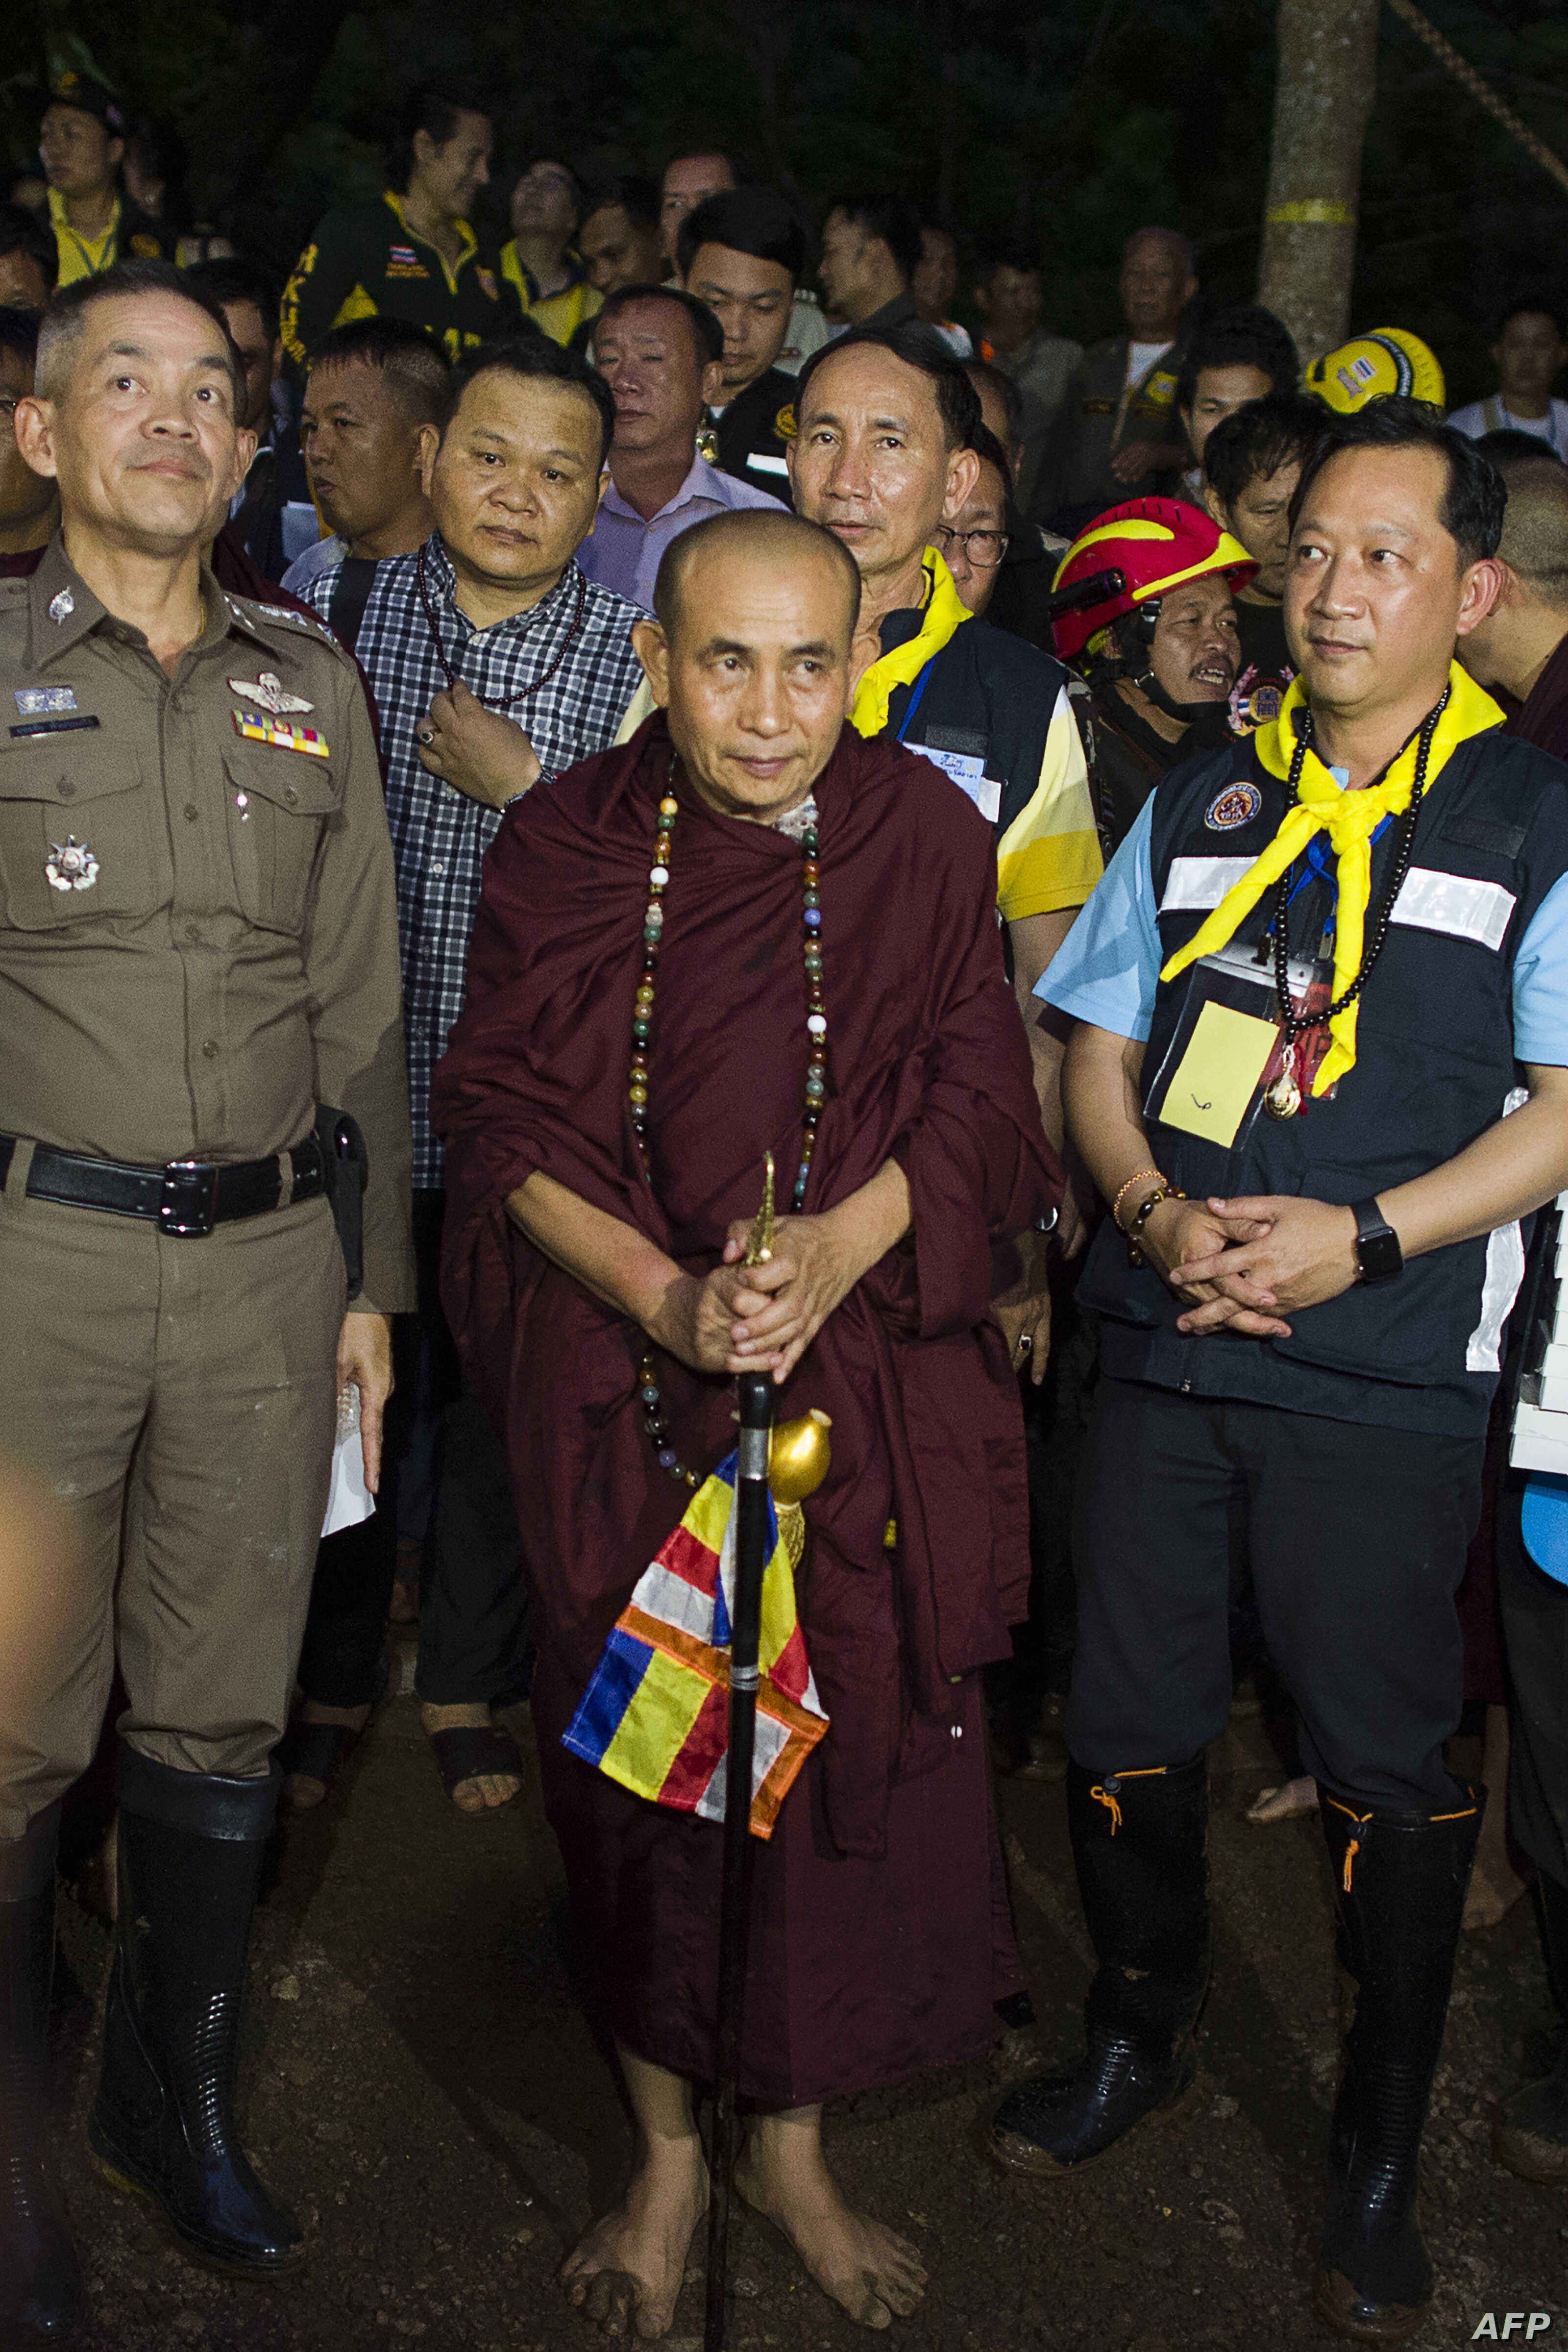 Buddhist monk Kruba Boonchum, center, exits after praying with relatives of the missing children in Tham Luang cave during a rescue operation for 12 boys and their coach trapped in the cave at the Khun Nam Nang Non Forest Park in the Mae Sai district...